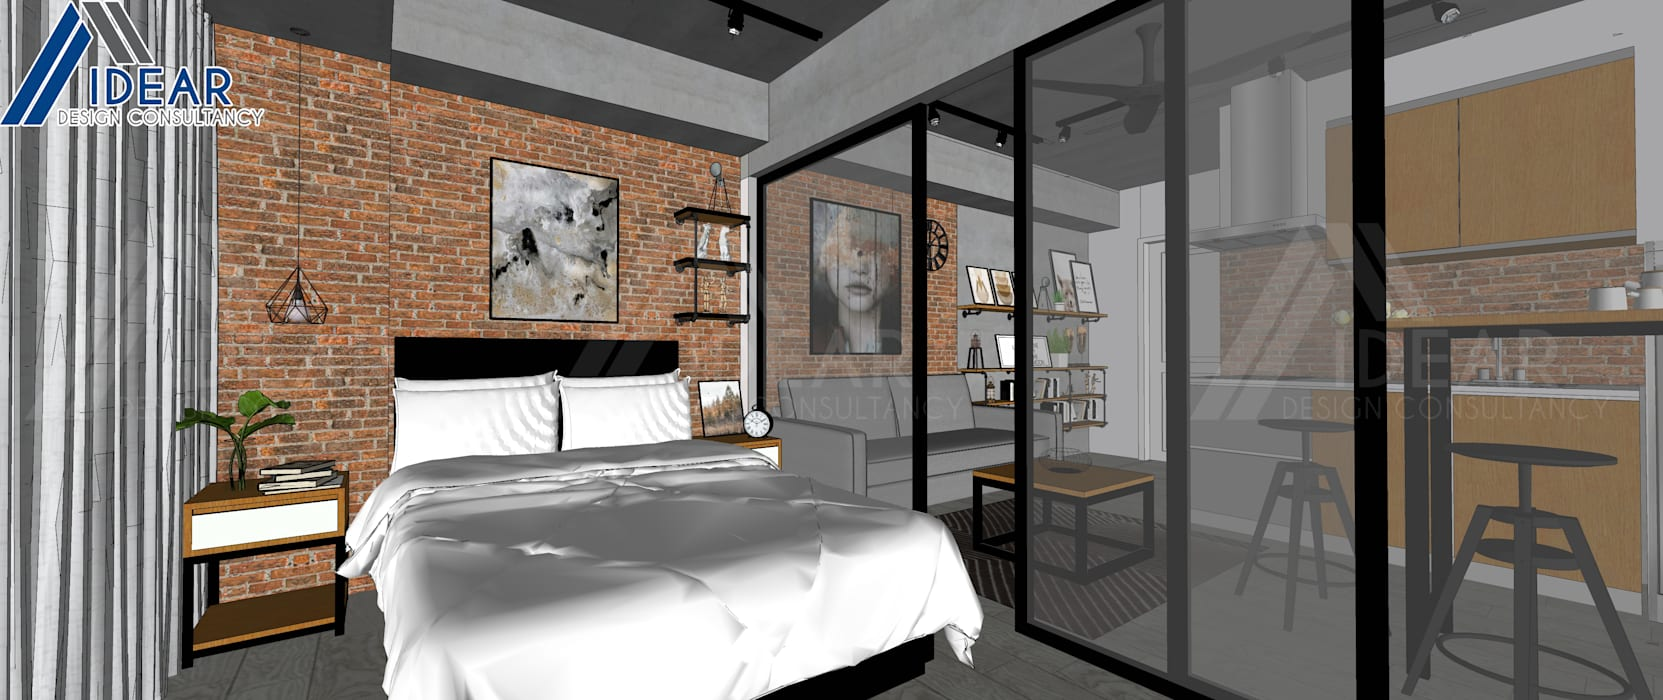 Rustic Vibe at Azure Urban Residences:  Bedroom by Idear Architectural Design Consultancy